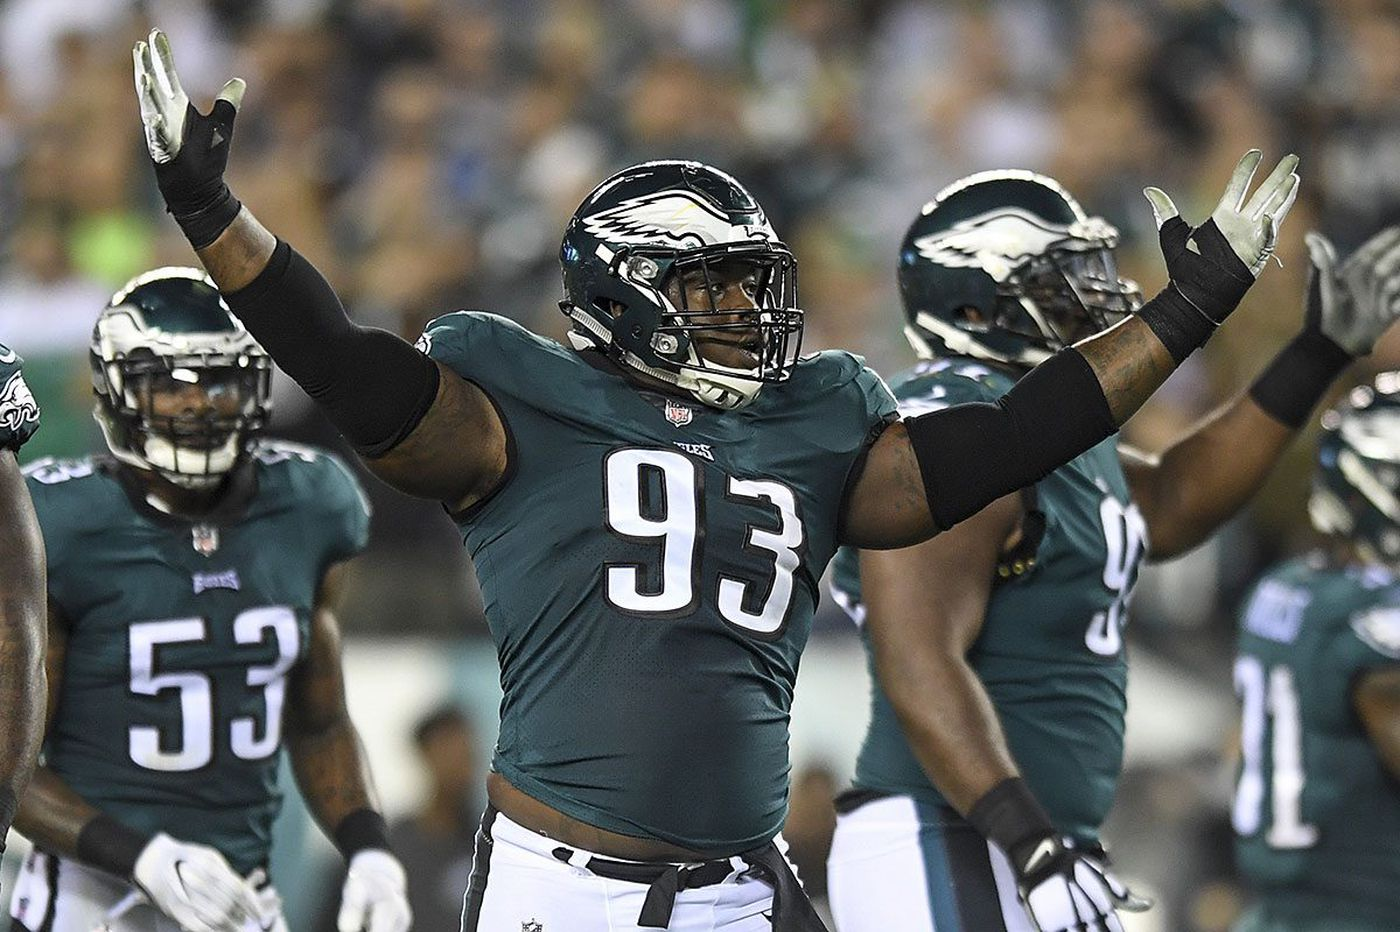 Eagles sign DT Tim Jernigan to $48 million contract extension